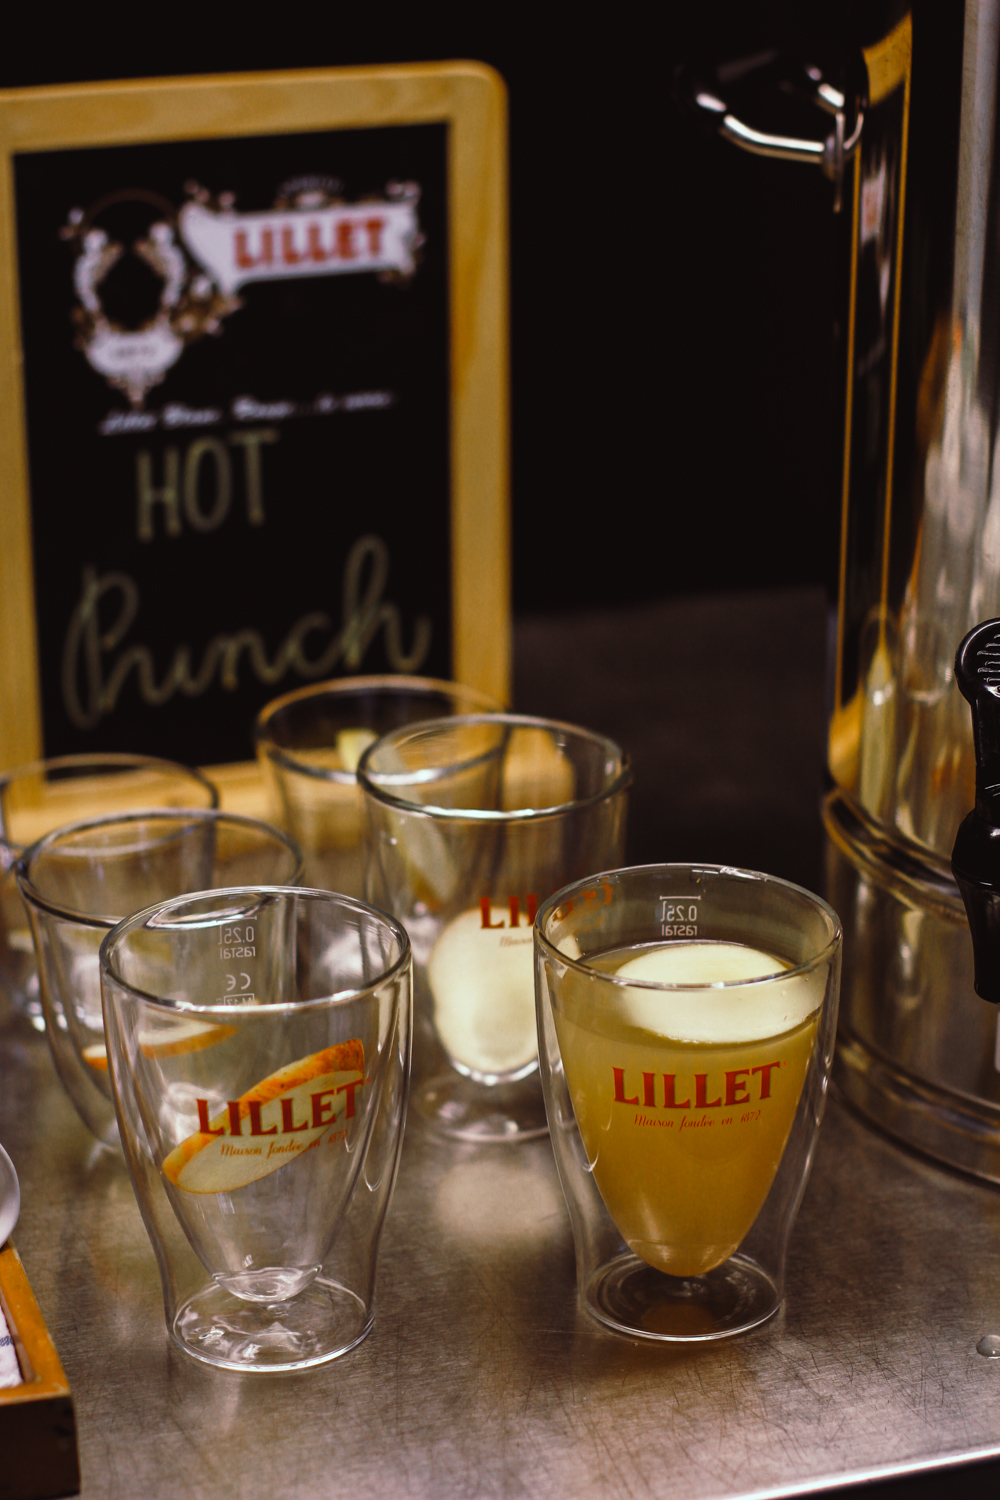 LILLET Hot Punch | we love handmade